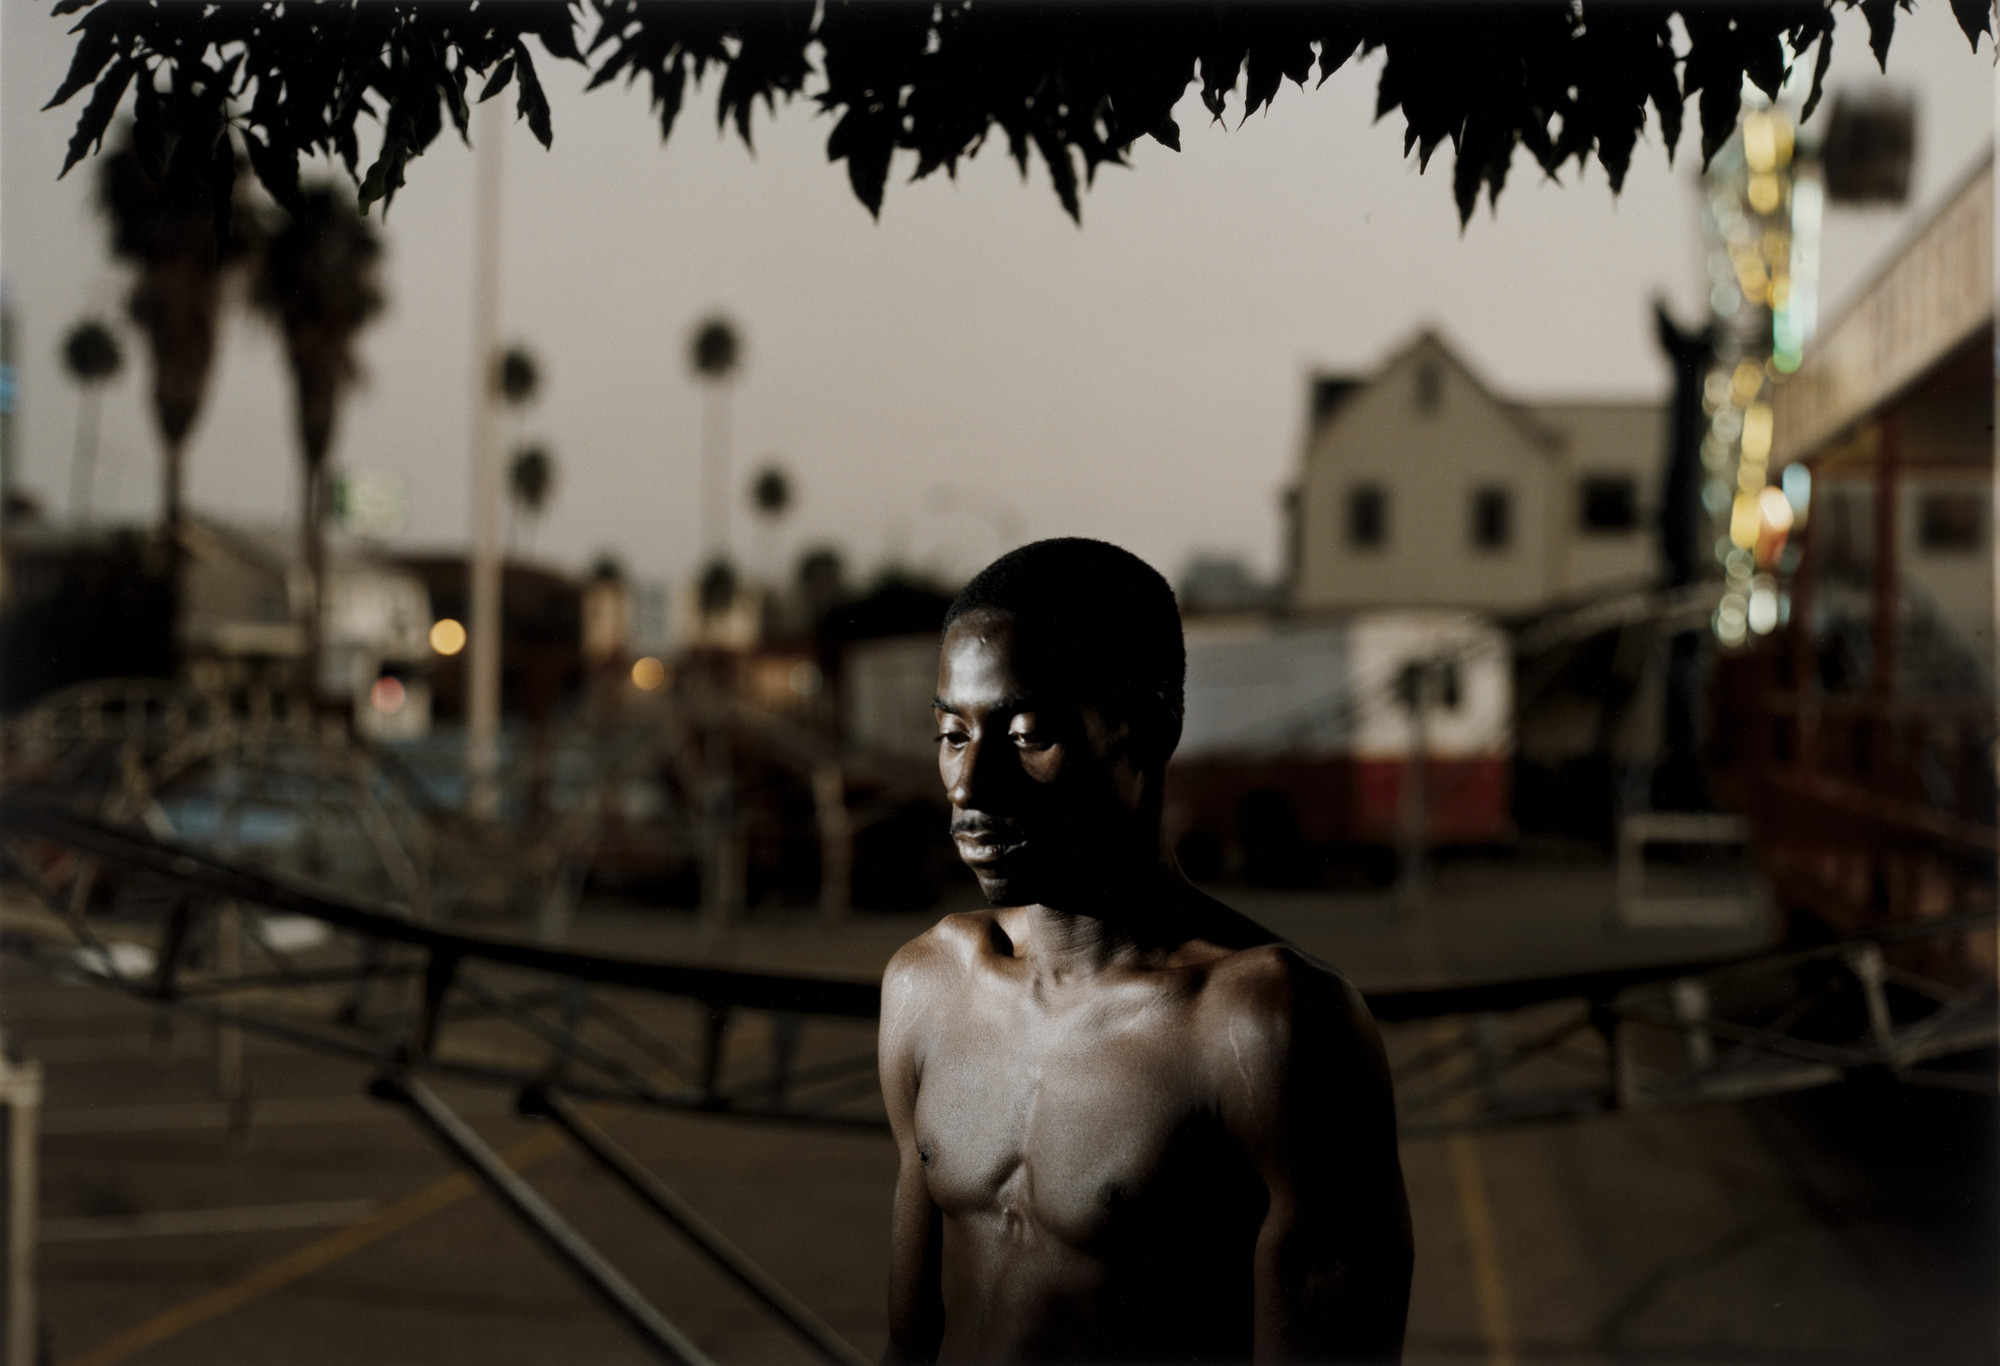 Philip-Lorca diCorcia. André Smith; 28 Years Old; Baton Rouge, Louisiana; $30. 1990-92